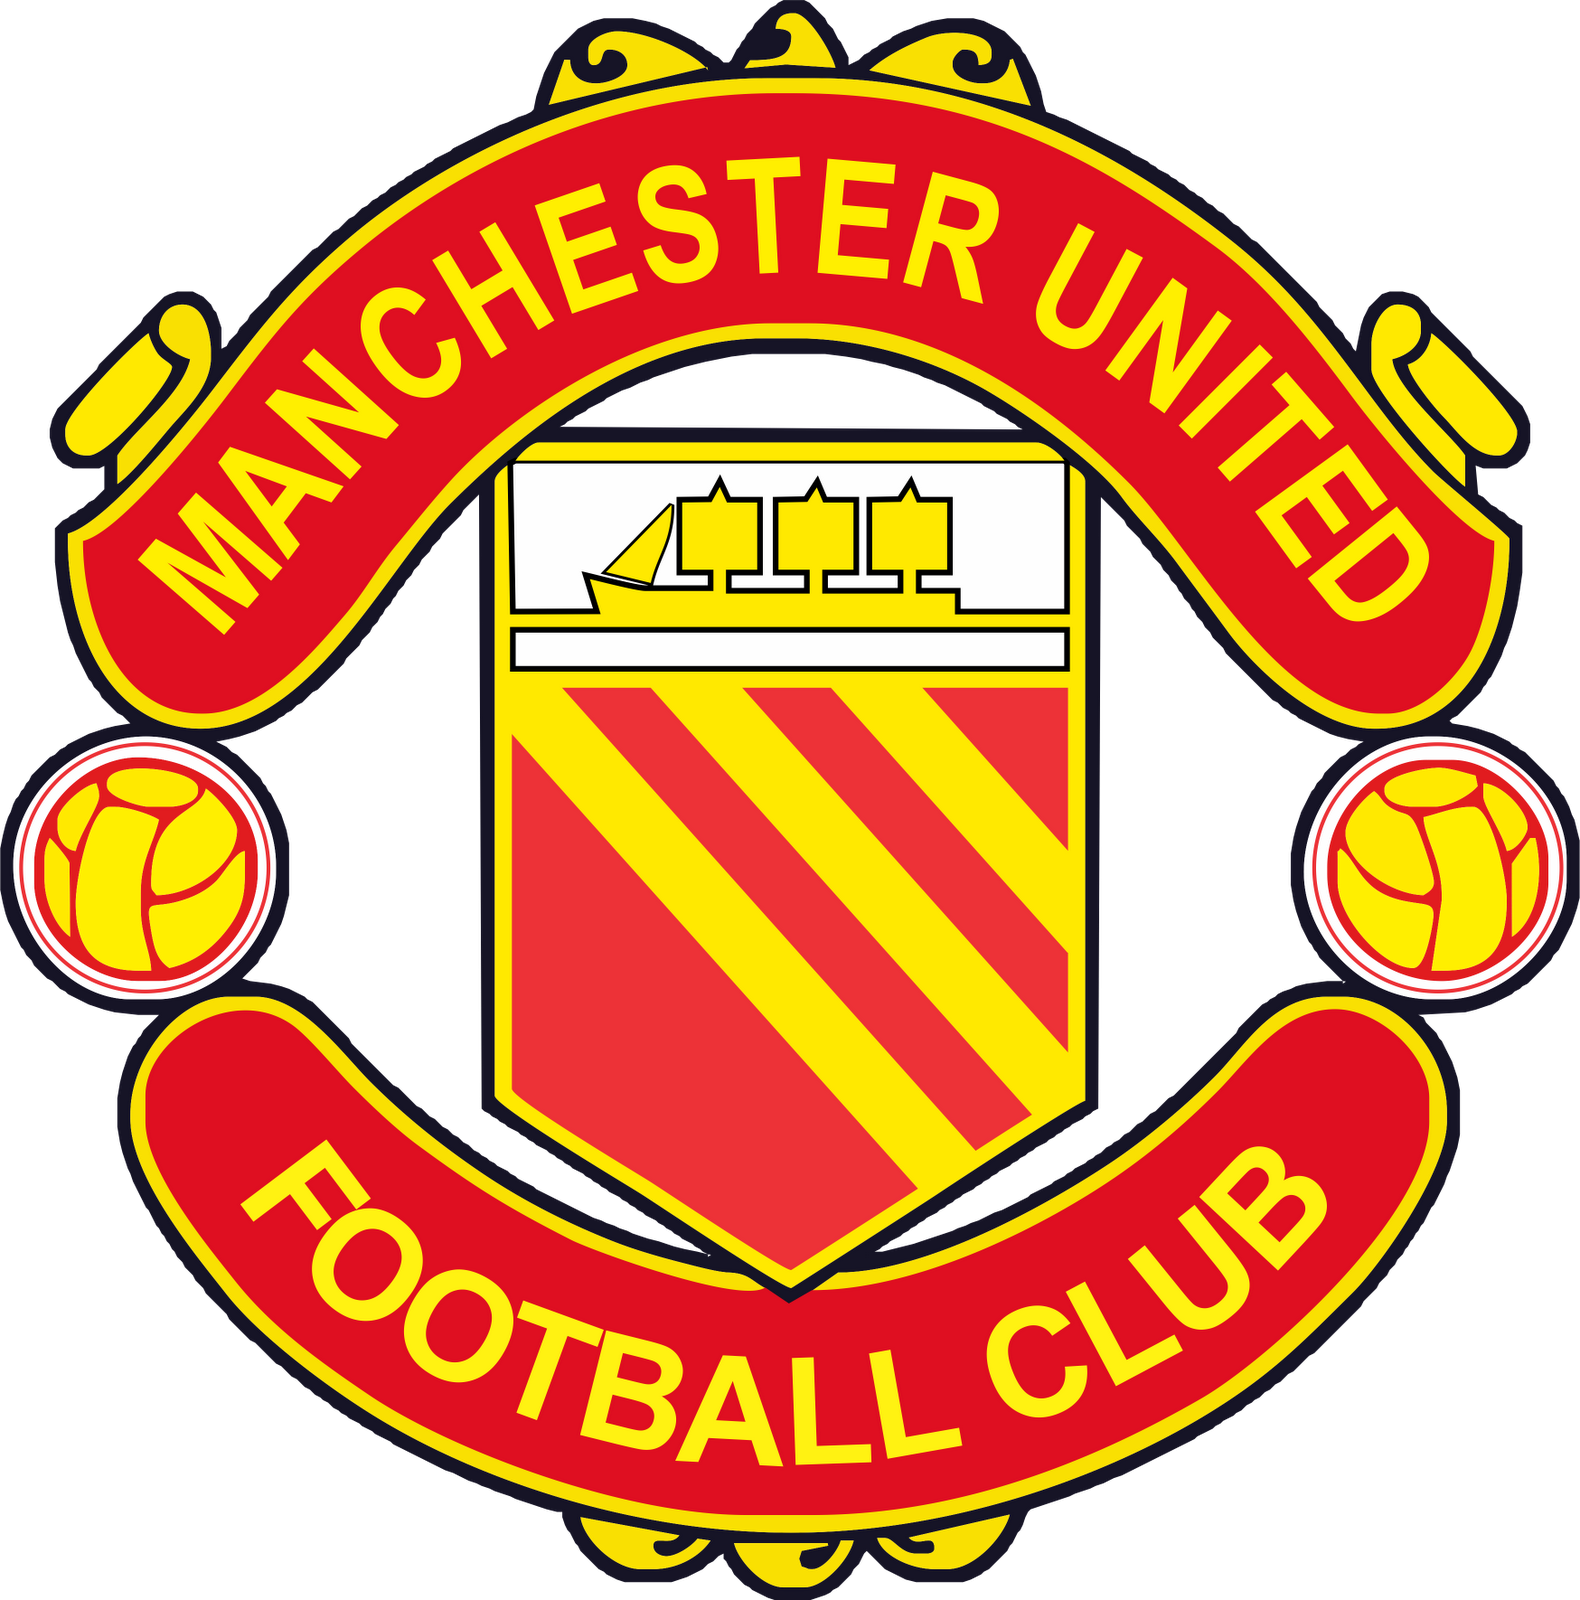 manchester united logo png images free d 621806 png images pngio pngio com